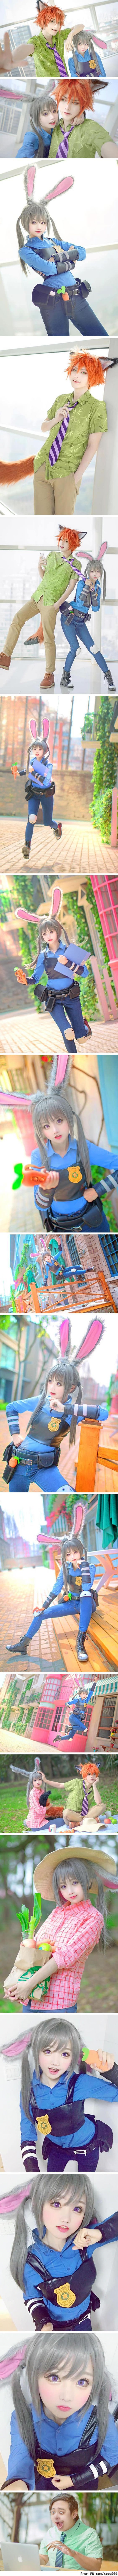 Zootopia cosplay by SeeU and friends (I'm too excited to cosplay this):